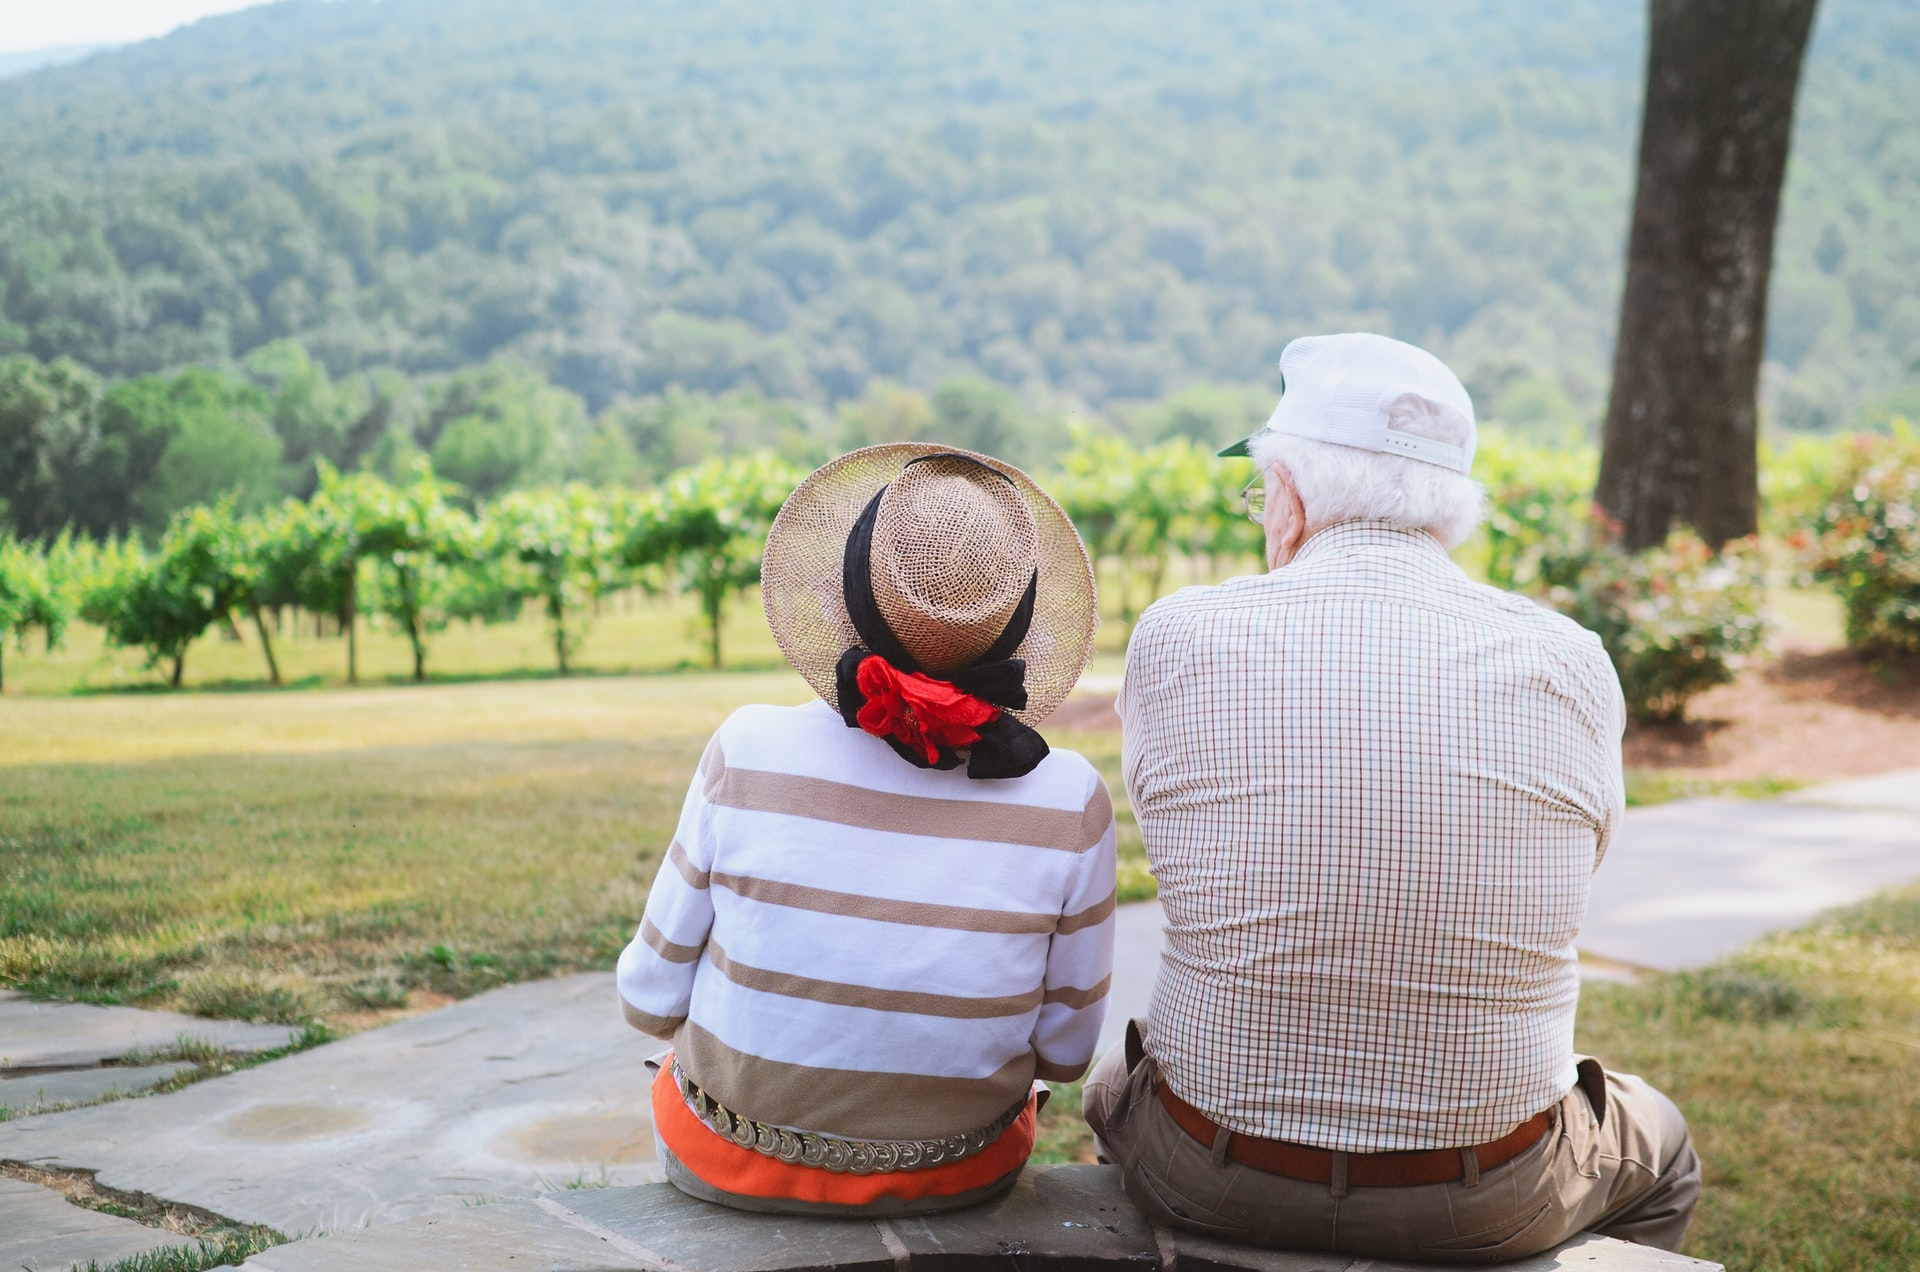 7 trips for traveling with elderly parents for the first time